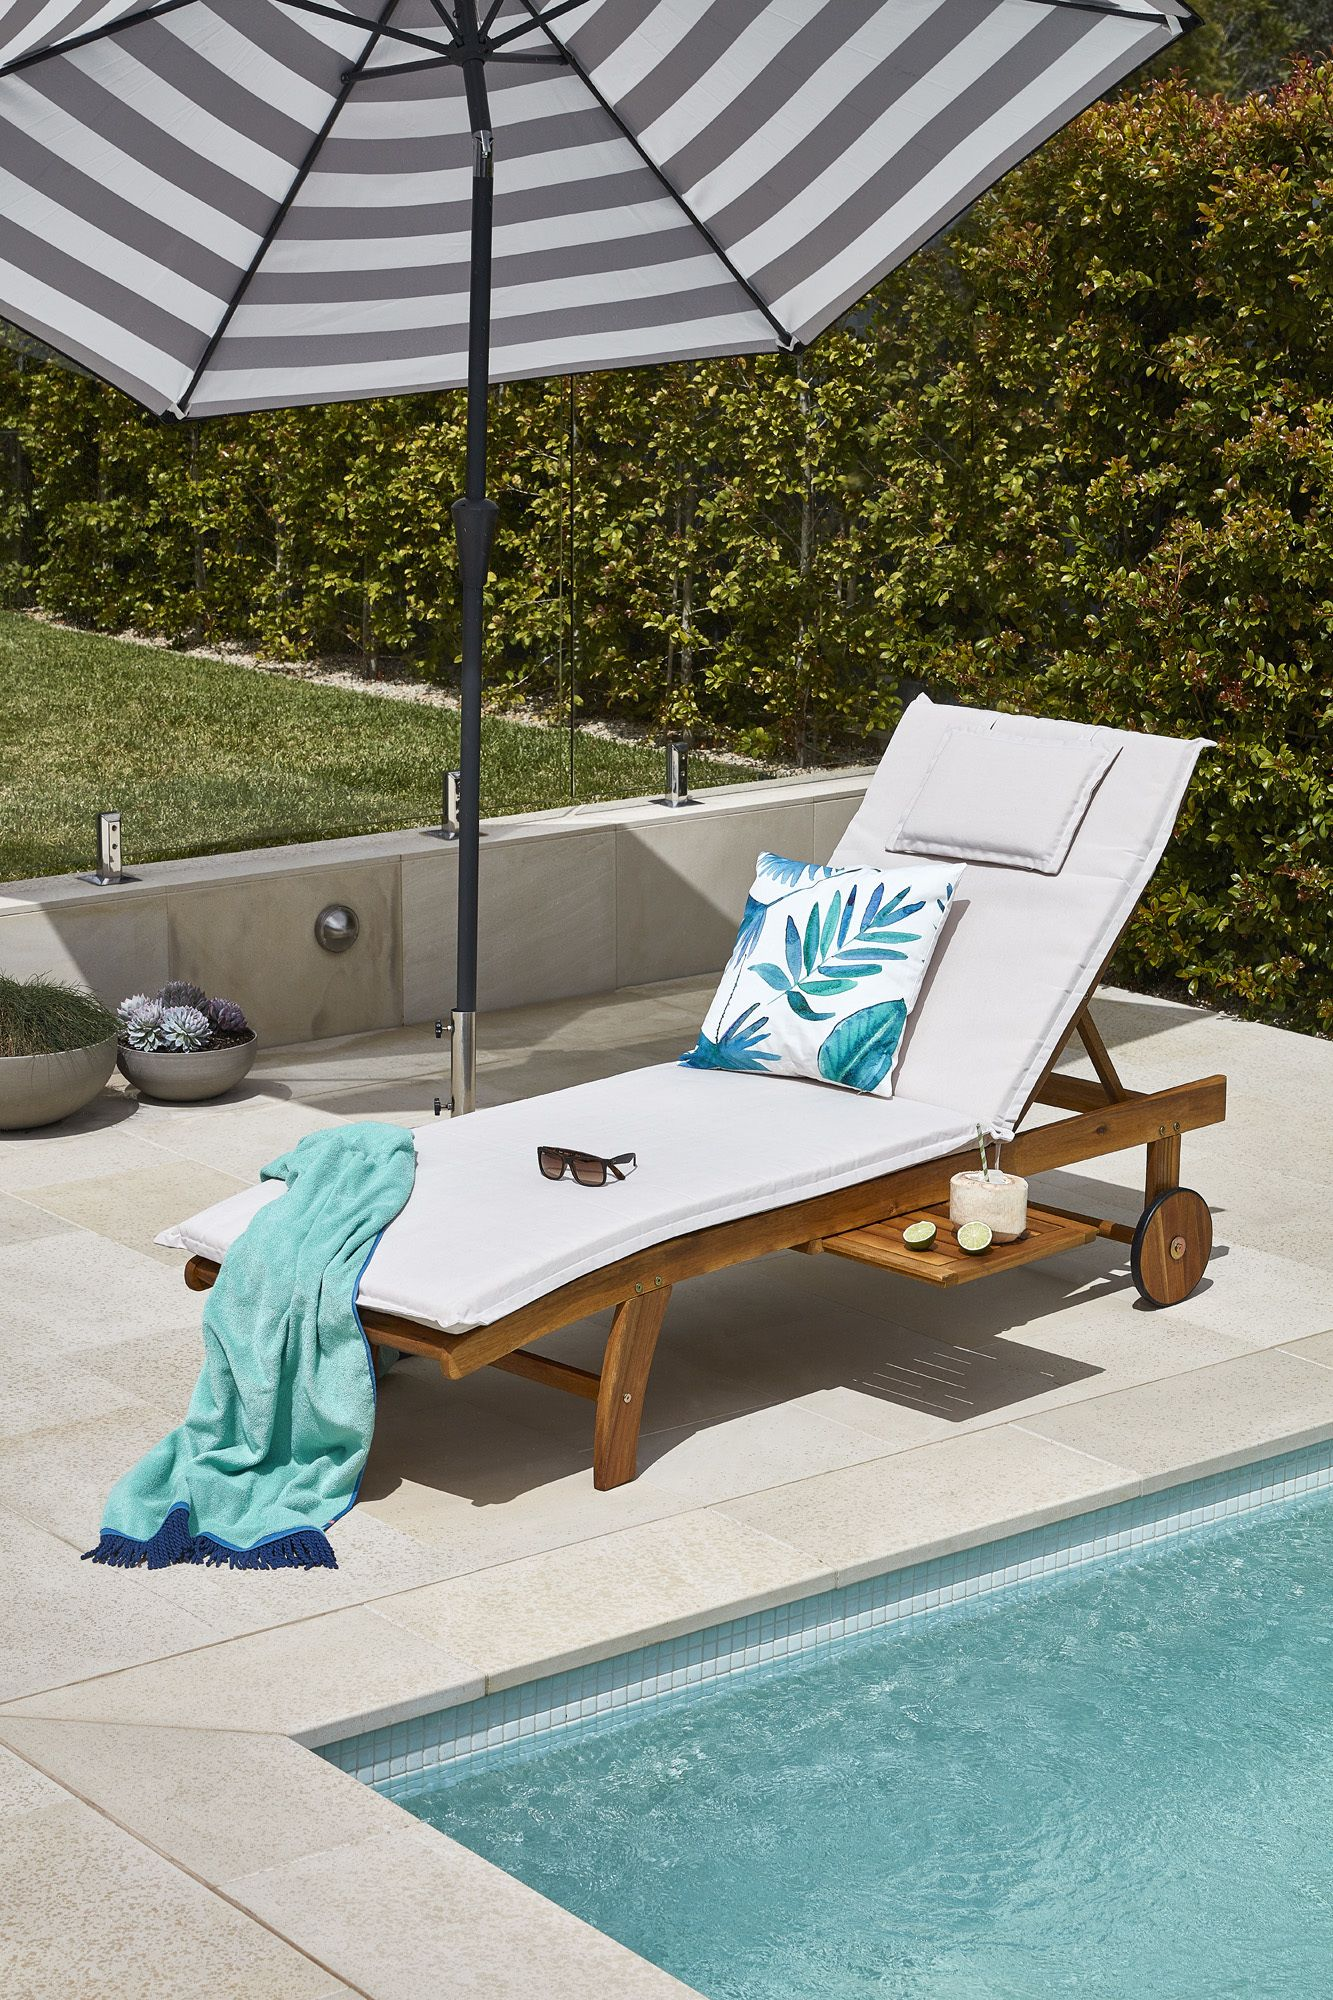 Monaco Wheeled Outdoor Hardwood Sun Lounger Temple